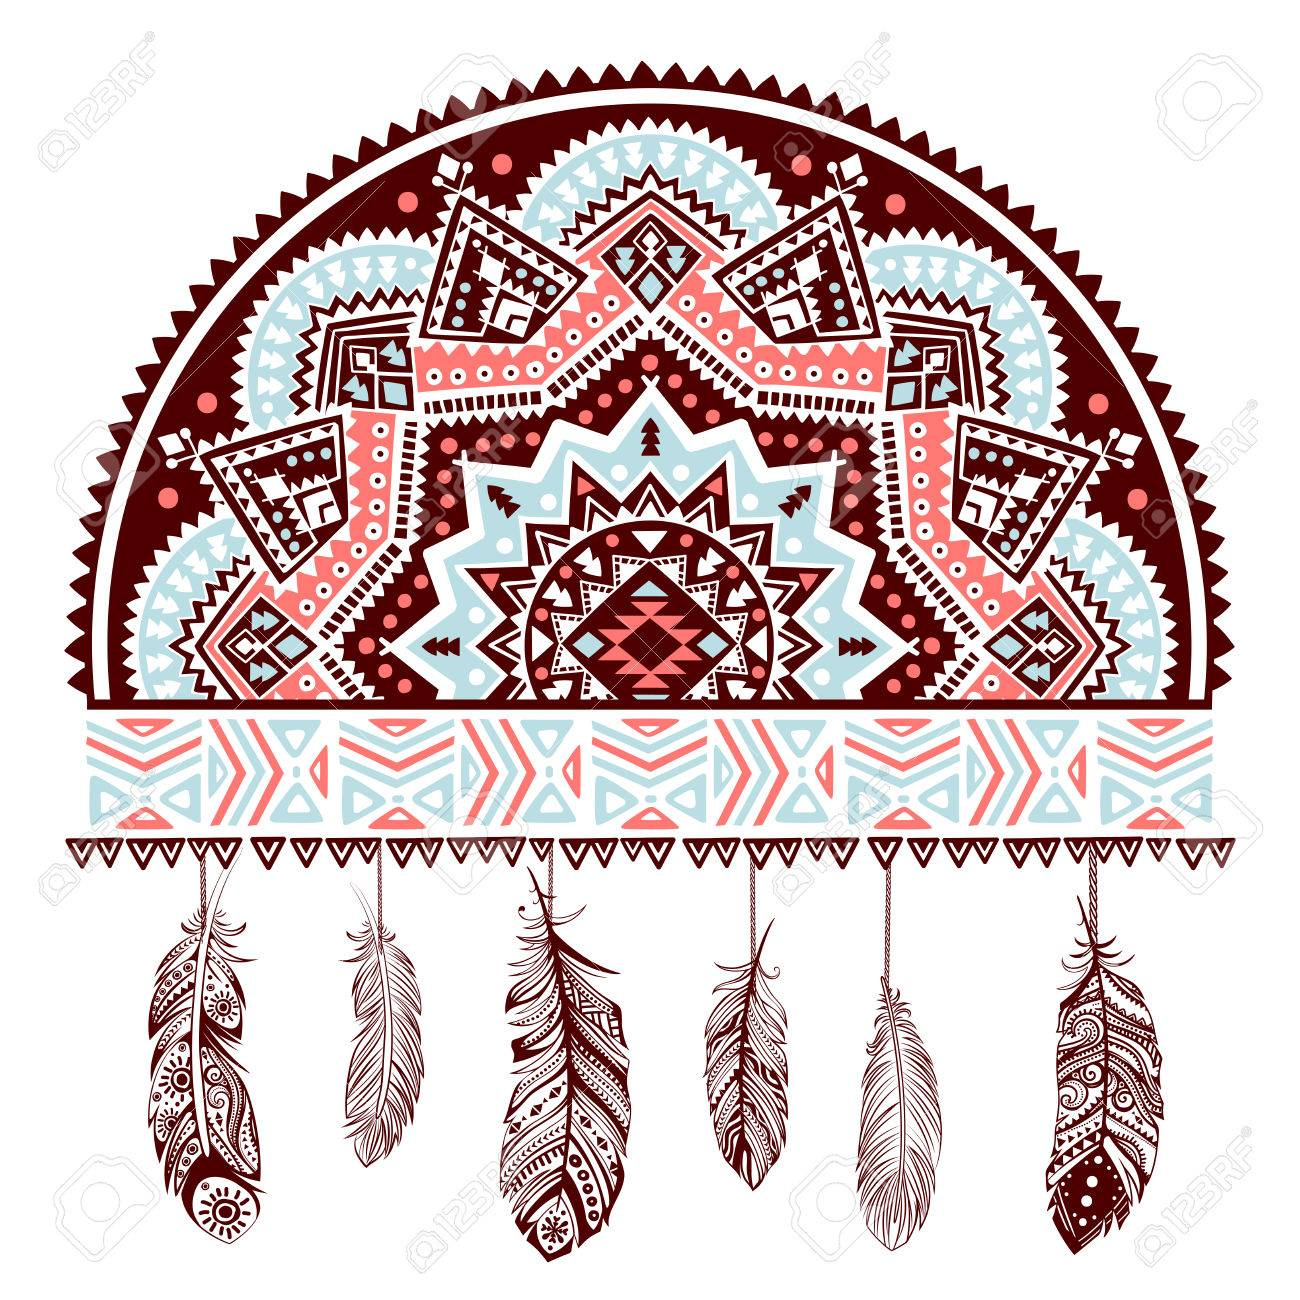 Ethnic American Indian Dream Catcher Can Be Used As A Greeting